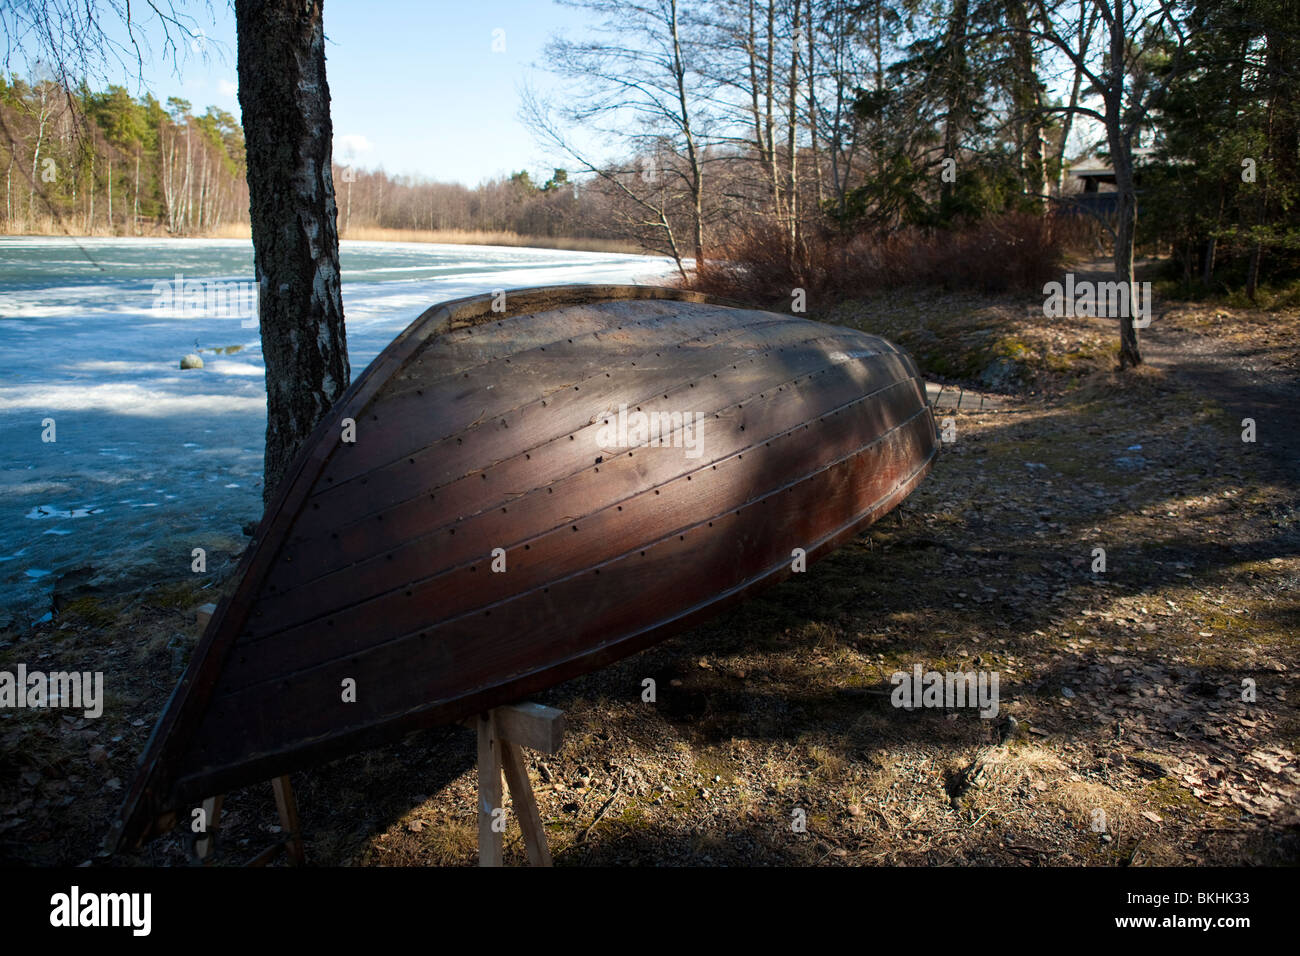 Wooden boat on the Stockholm archipelago with frozen lake background - Stock Image